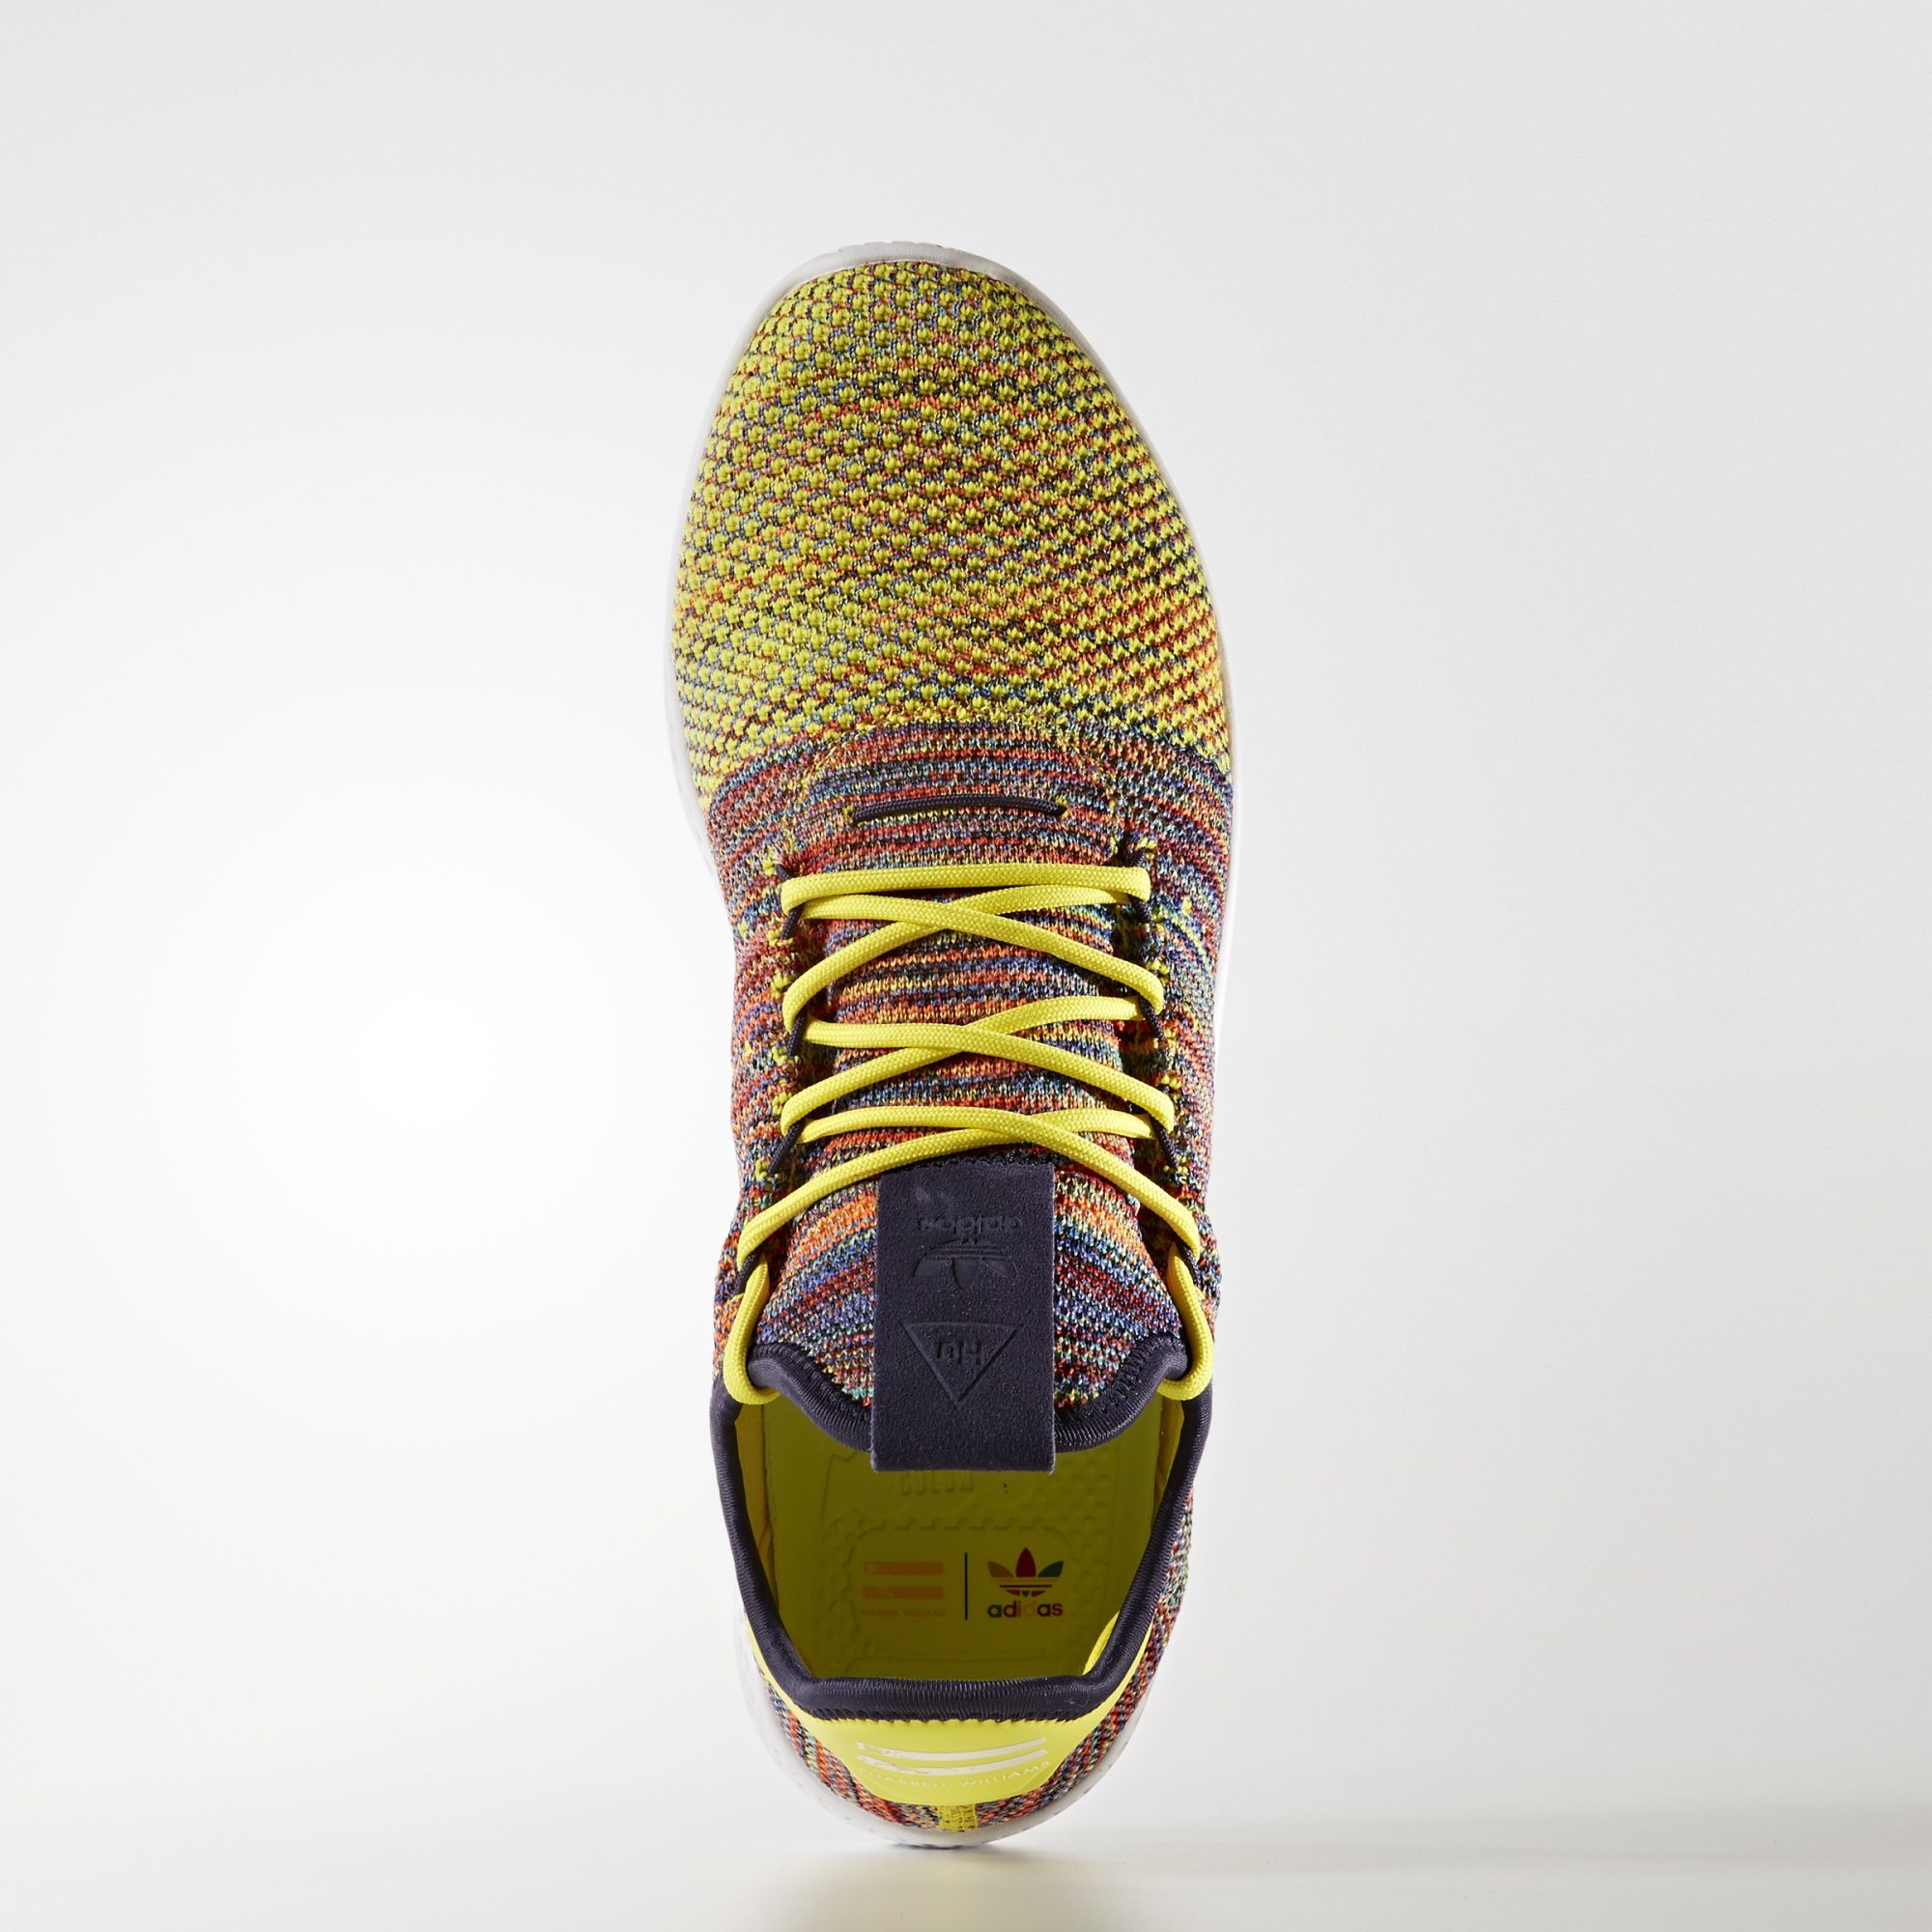 BY2673 Pharrell Williams x adidas Tennis HU Noble Ink 1